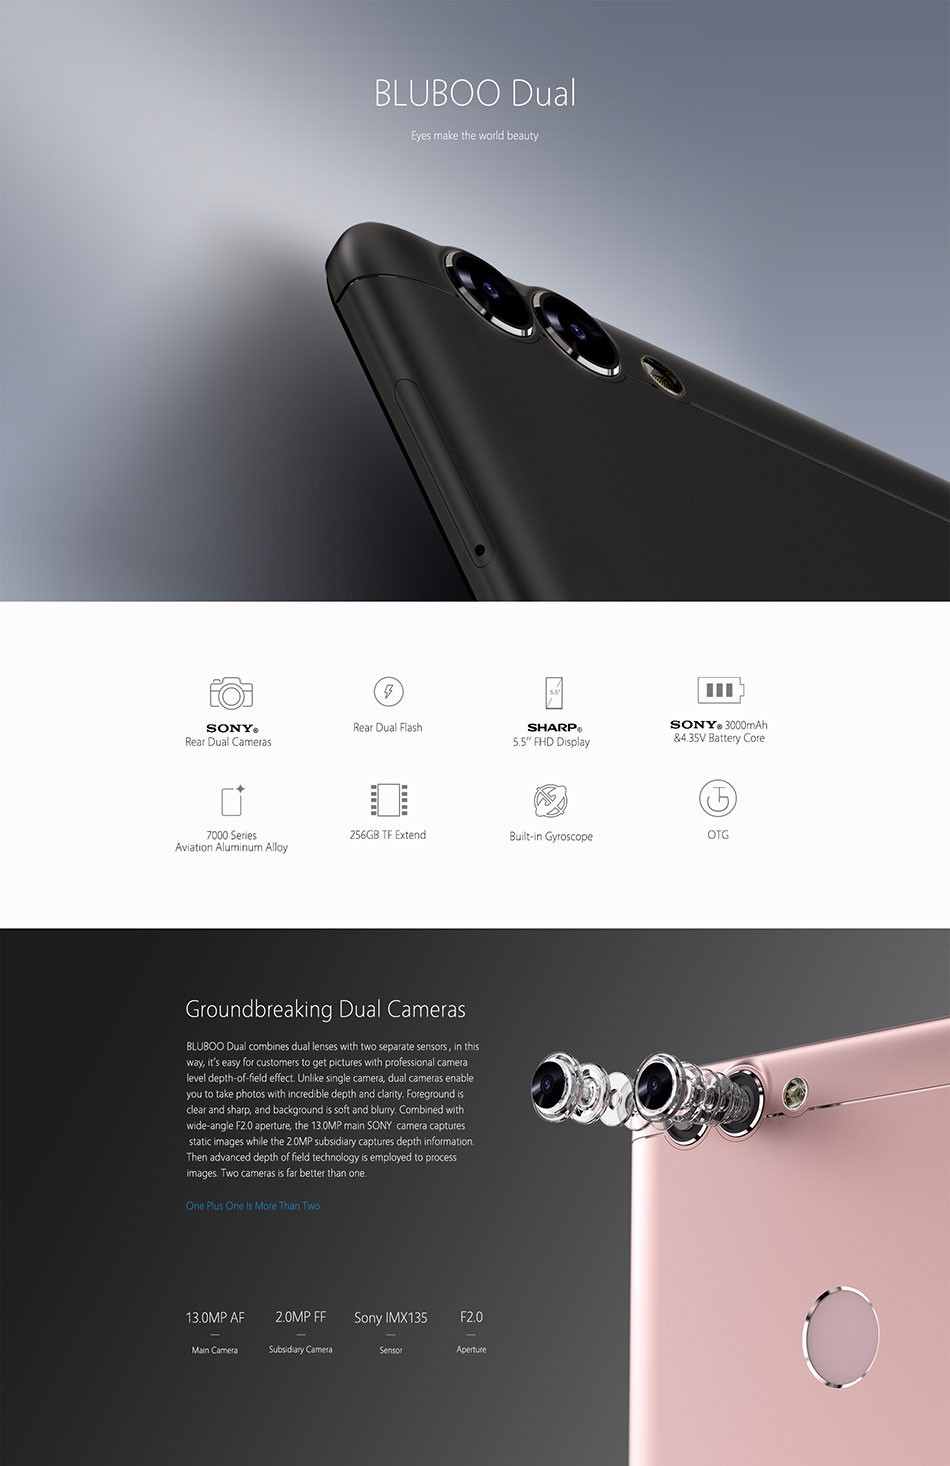 """image for BLUBOO Dual 5.5"""" FHD Dual Back Camera 4G LTE Cell Phone MTK6737T Quad"""